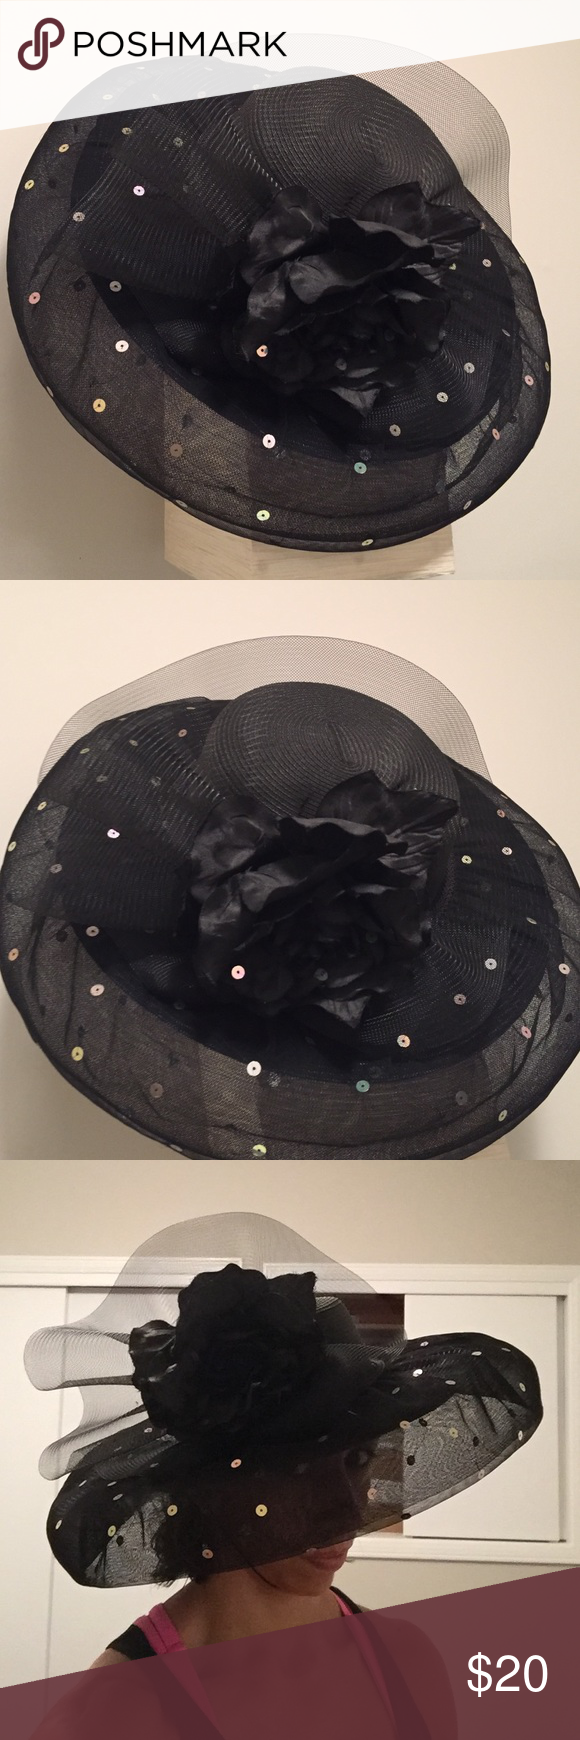 Oversized bonnet This is the perfect hat for a horse race or any other party requiring a large black hat. This piece has never been used. Accessories Hats